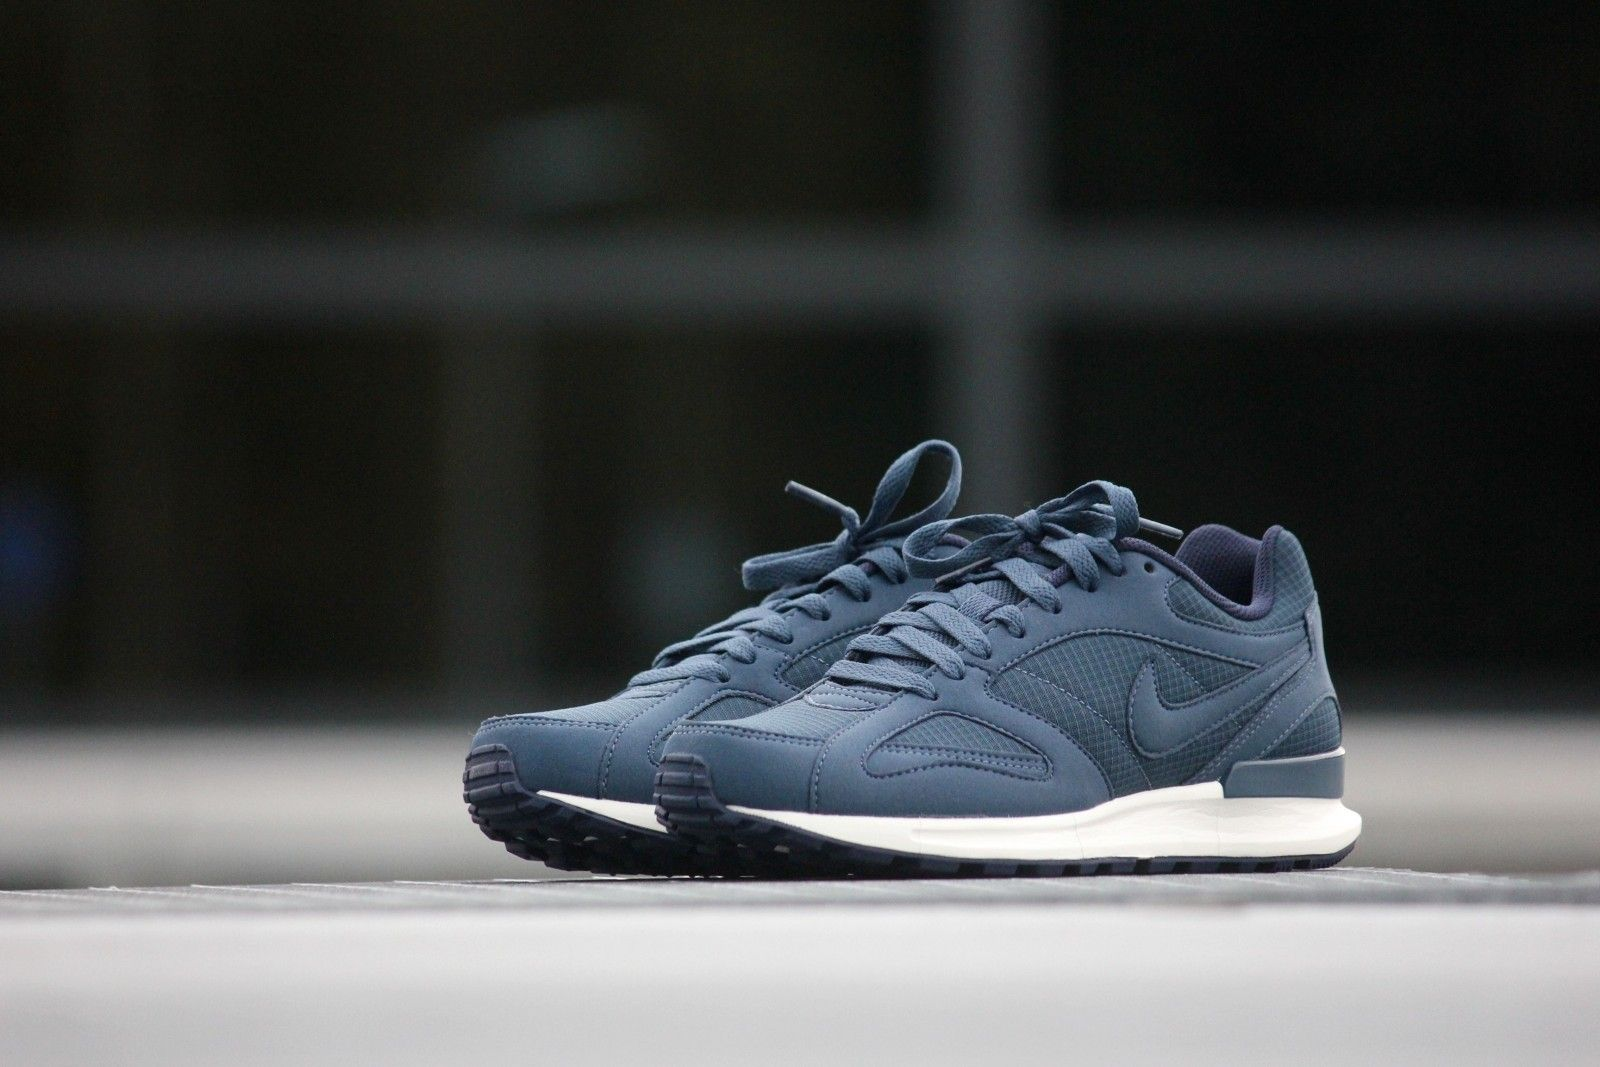 67f7a44439b1 Nike Air Pegasus New Racer Squadron Midnight Navy - 705172-414 ...